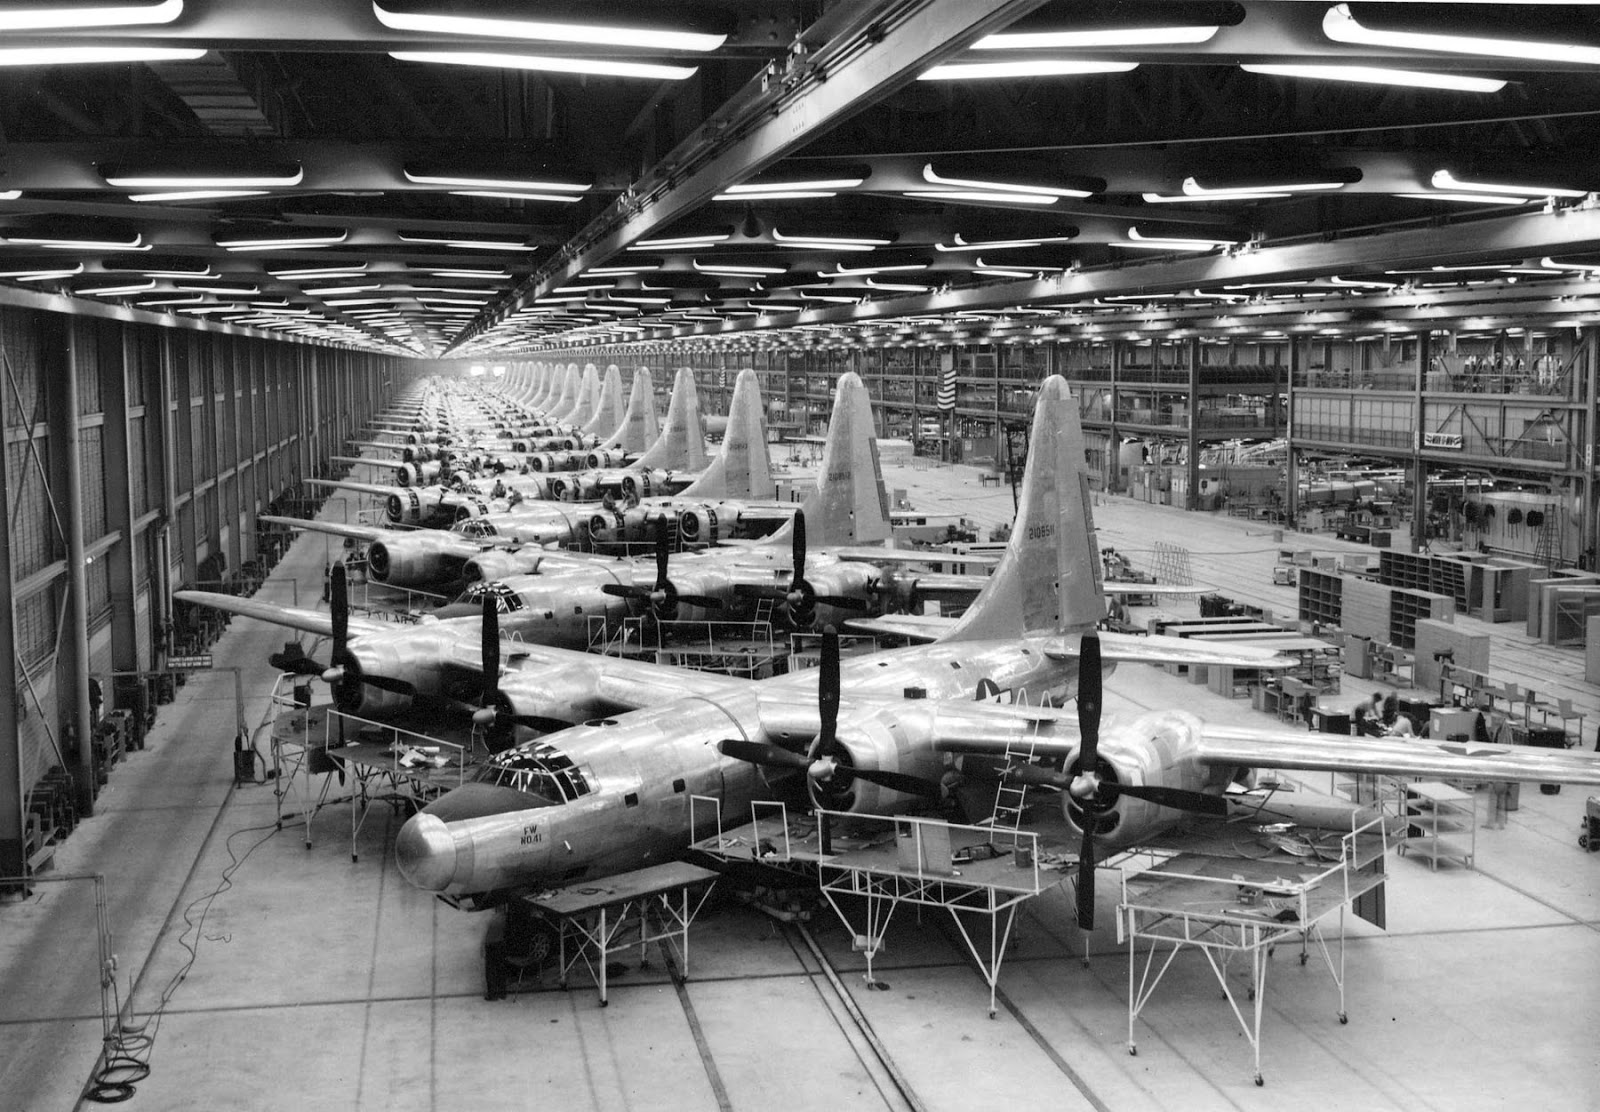 32 Dominator bomber factory in Fort Worth 1944 #666666